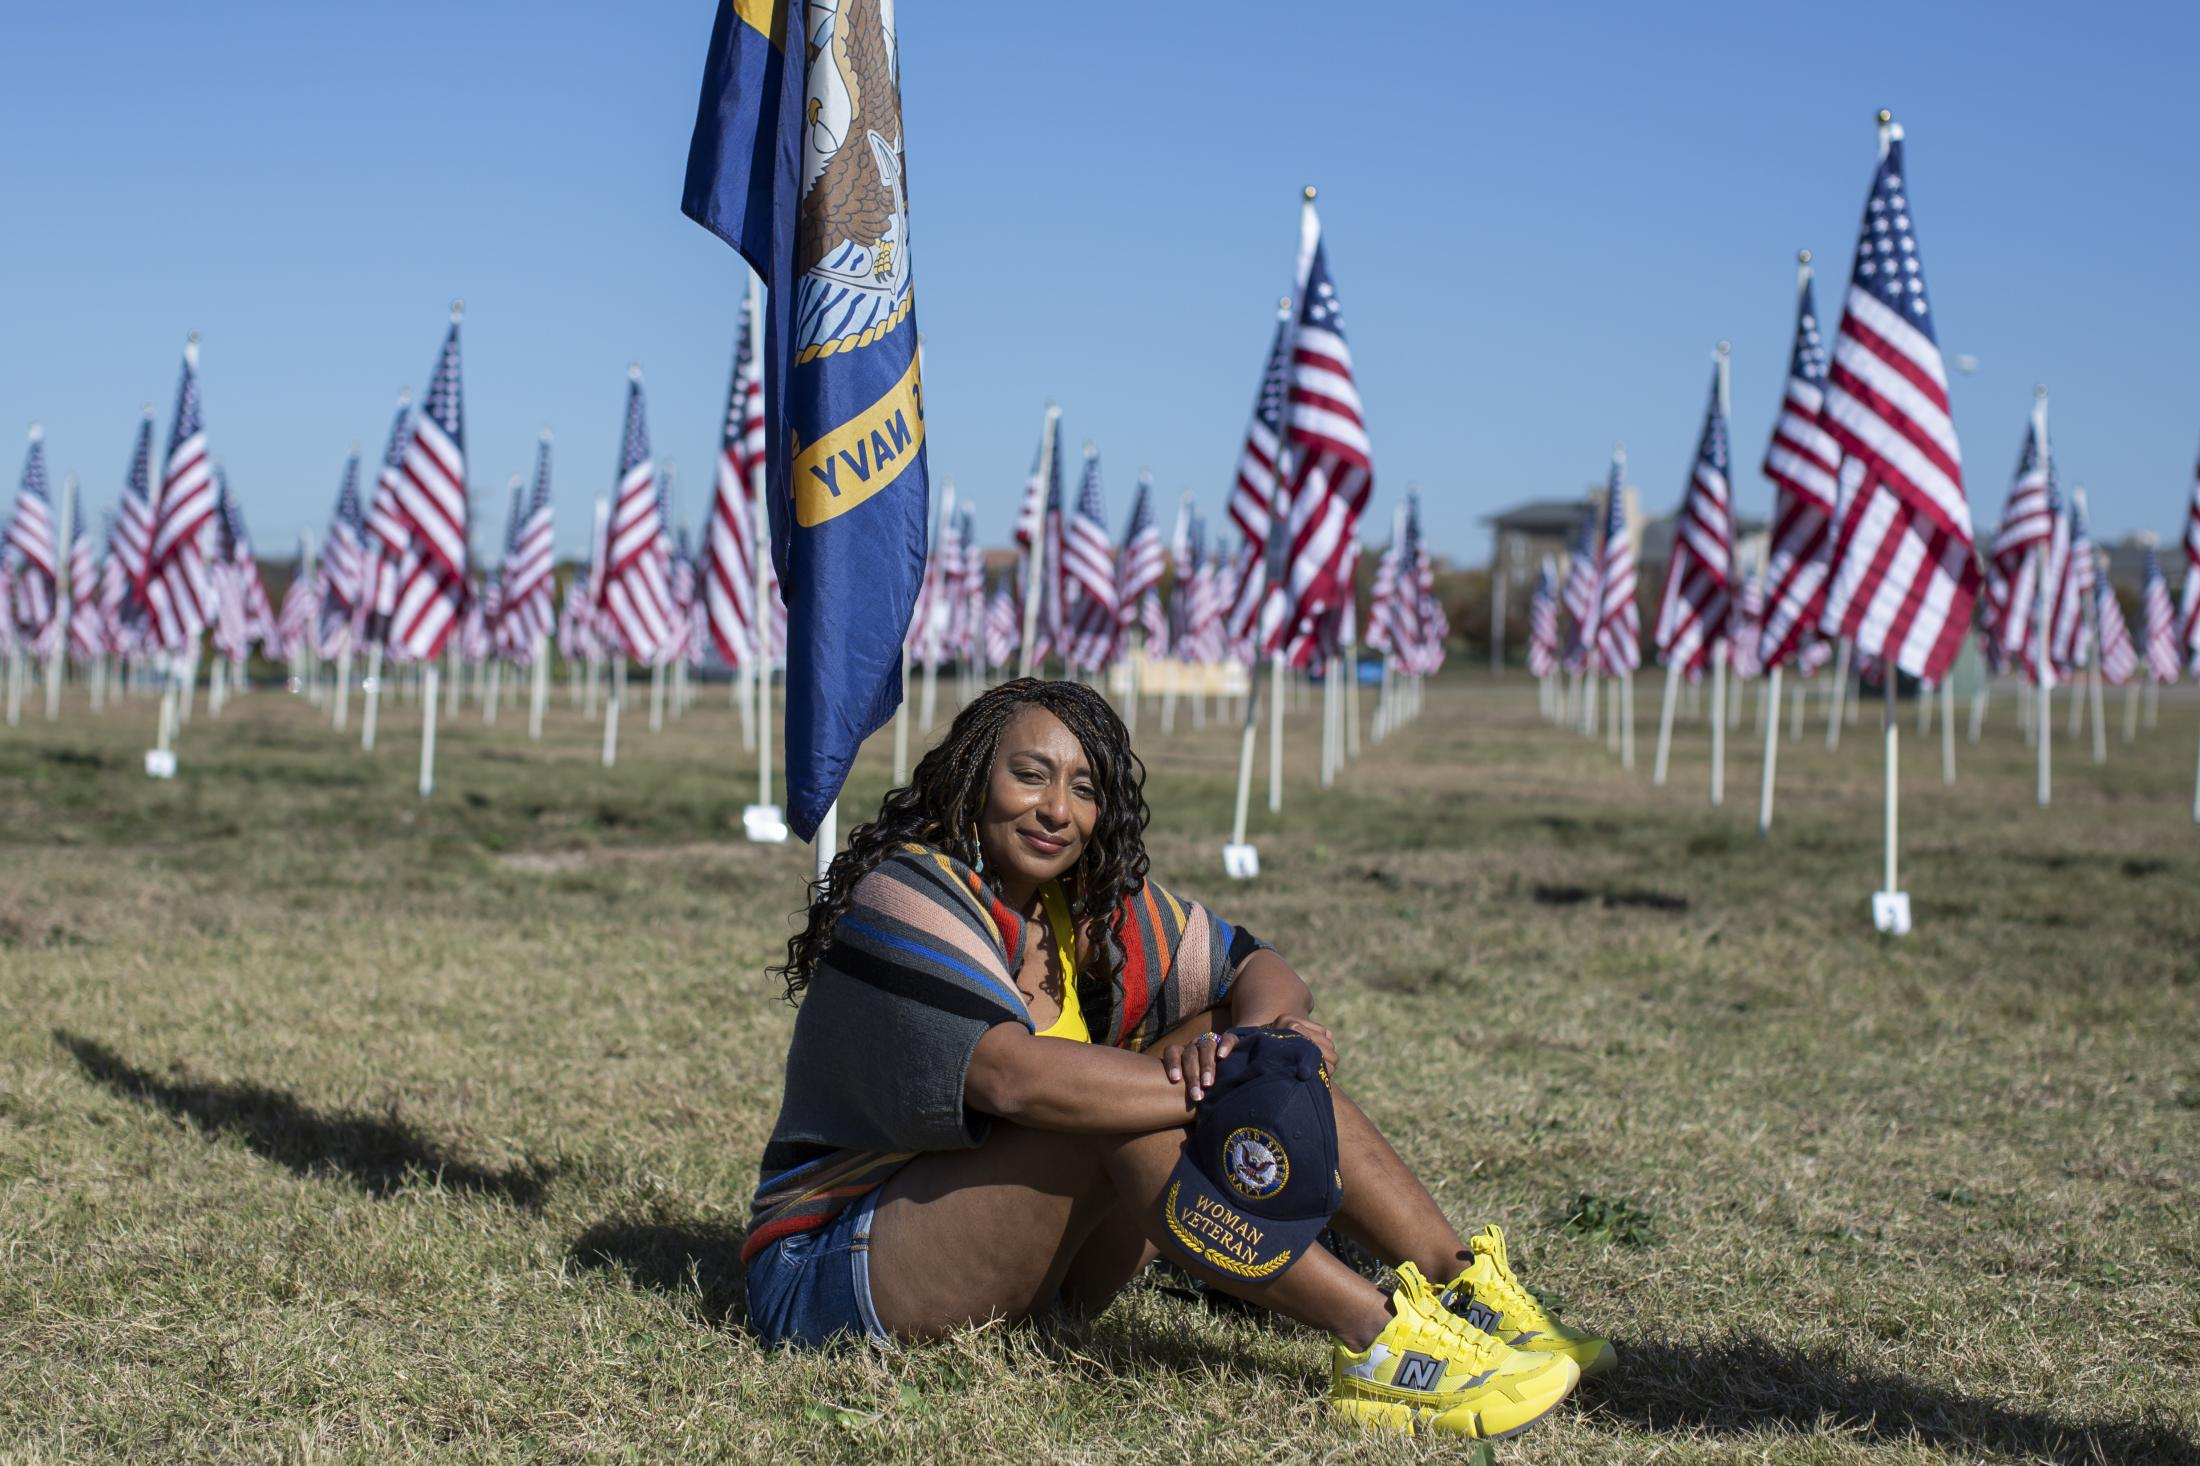 Mary Wilkins, a Veteran of the United States Navy, Sits under the Navy flag at a Veterans Day Memorial in Plano, Texas. Remembering the brave women who have served our country. In 1917 Loretta Walsh became the first woman to enlist in the United States Military, this lead to a 1948 law that made American women an important part of our military. Today 14% of our Active duty military are women and 18% are made up of our reserve and guard forces.